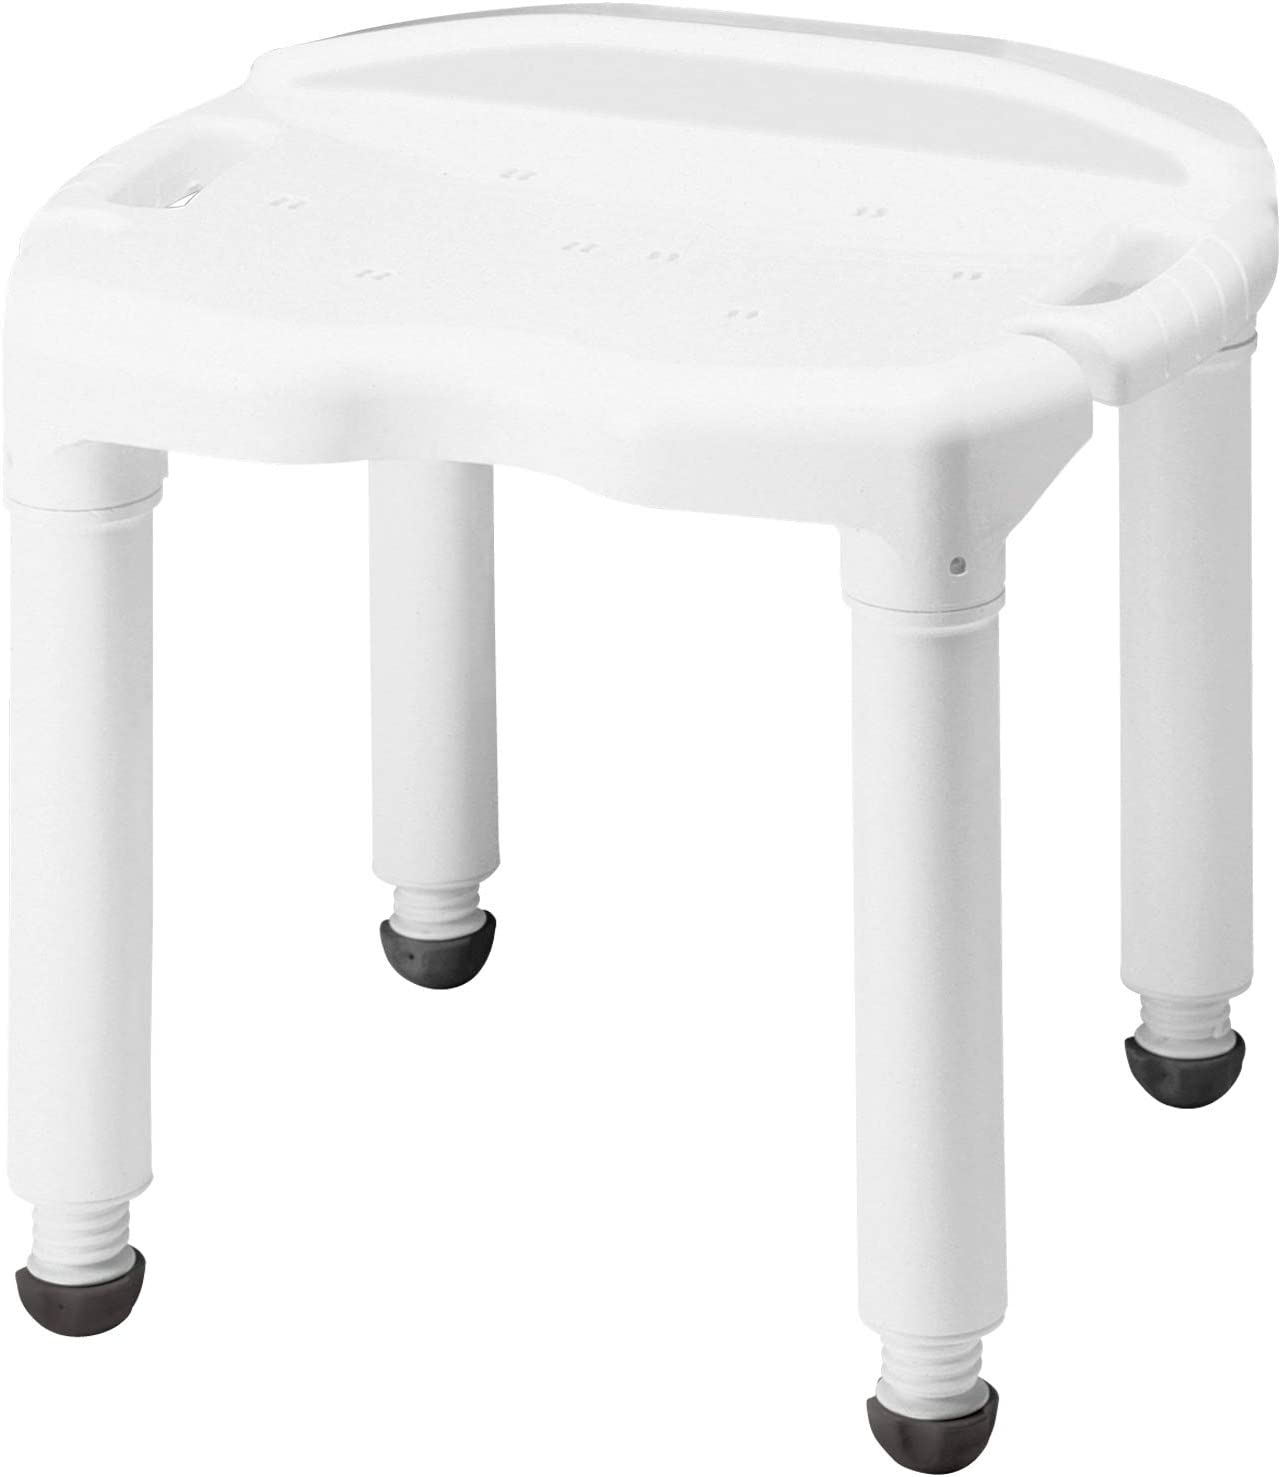 Carex Universal Bath Seat and Shower Chair - With Support Up To 400 Pounds - Adjustable Height Shower Bench: Health & Personal Care